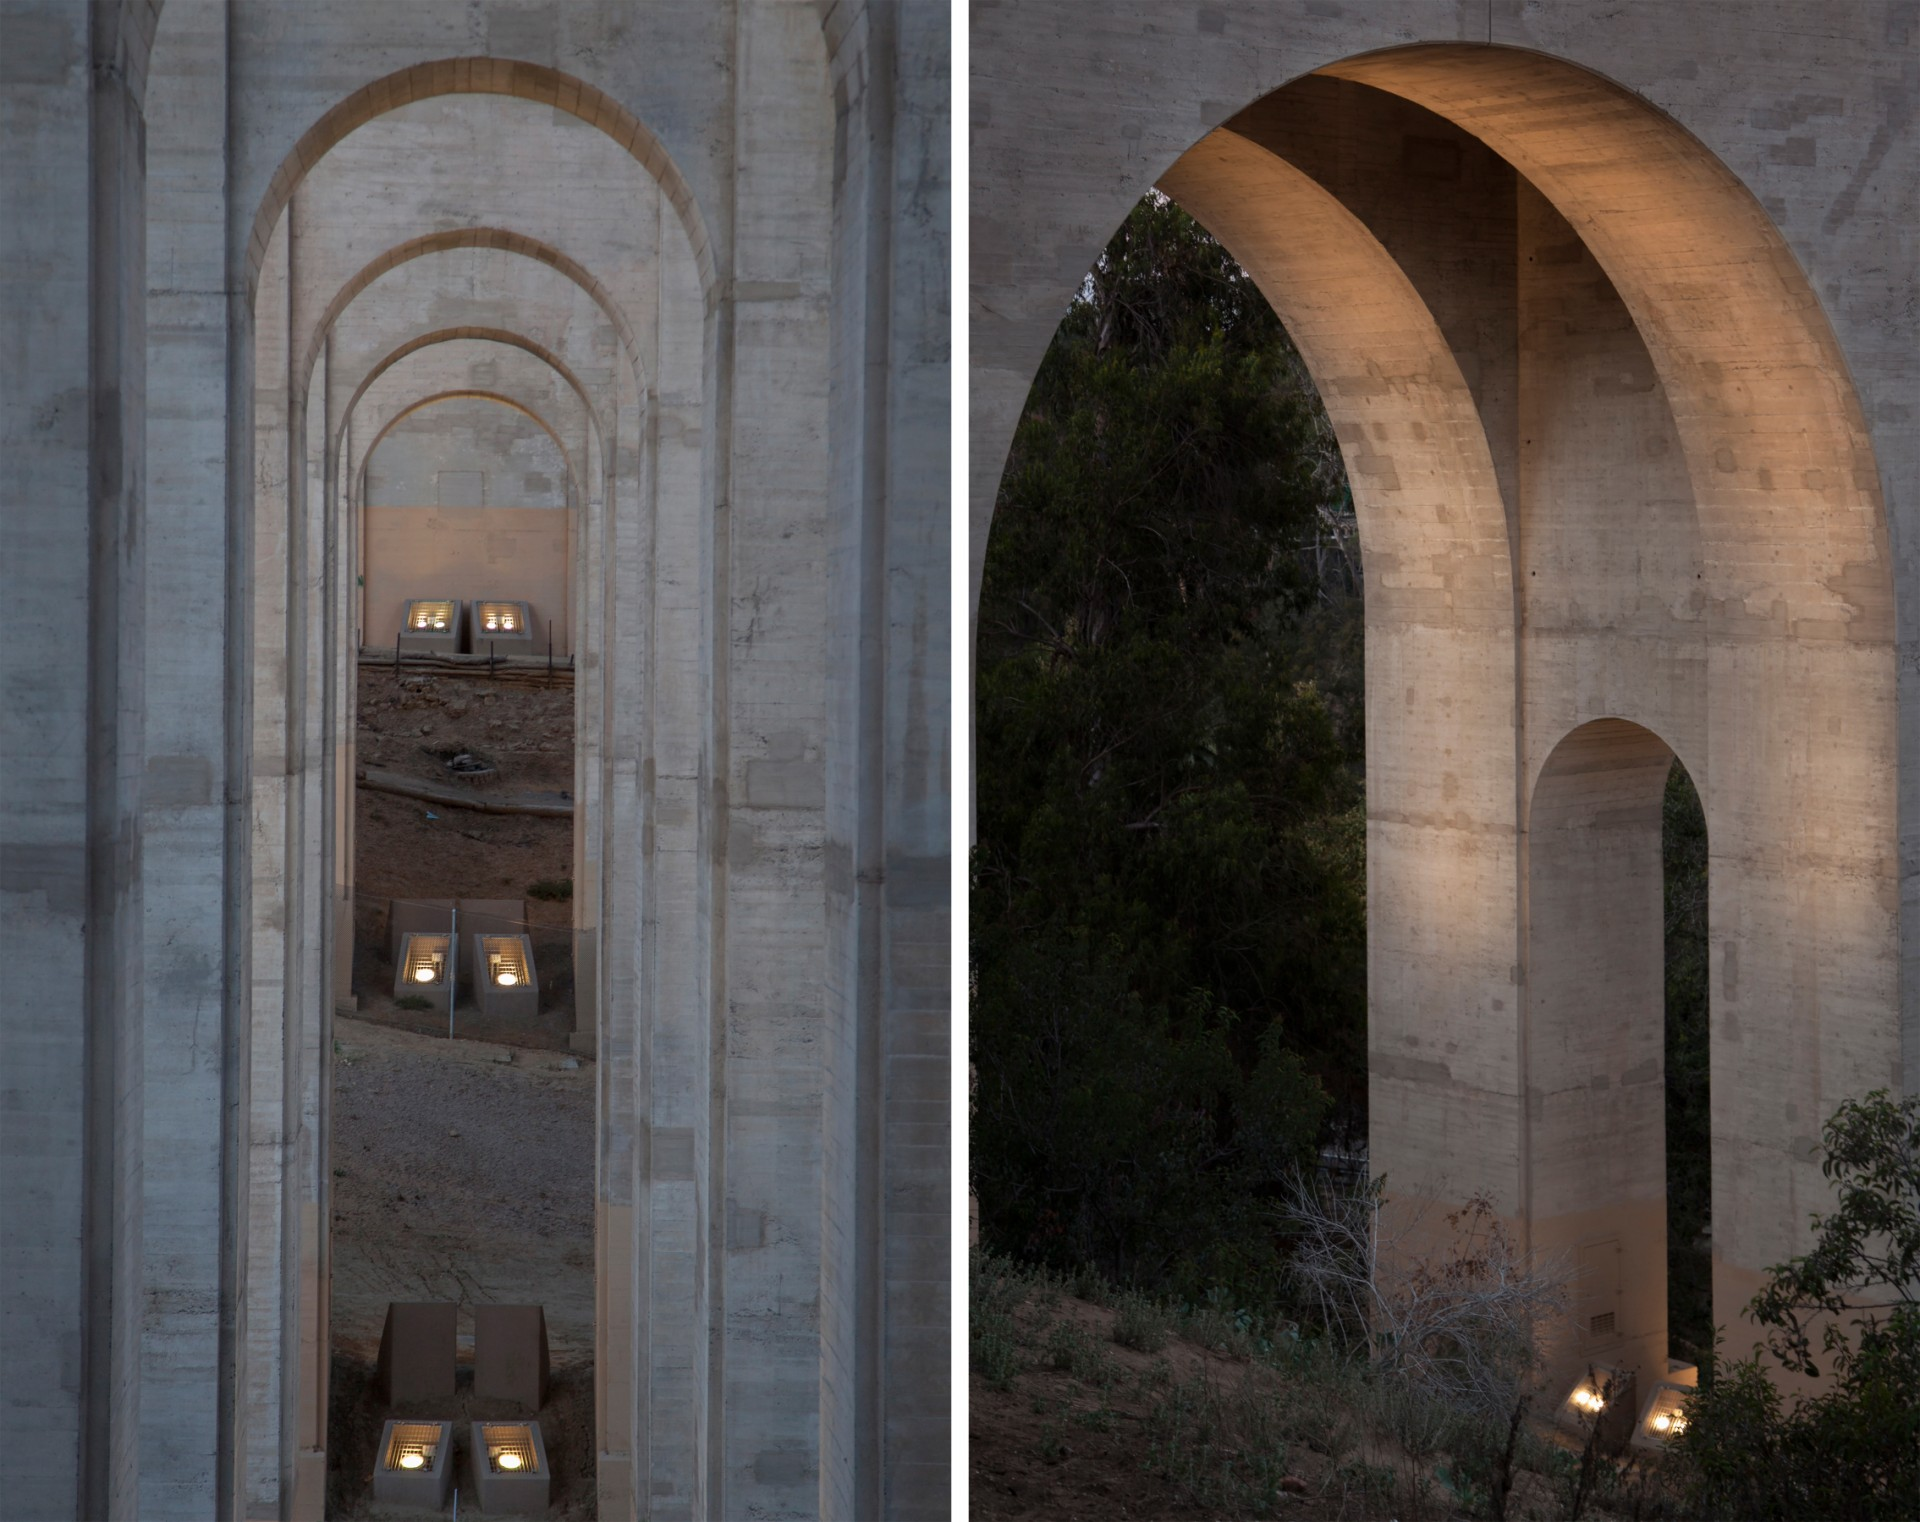 The luminaires are mounted in pairs at the base of each arch.